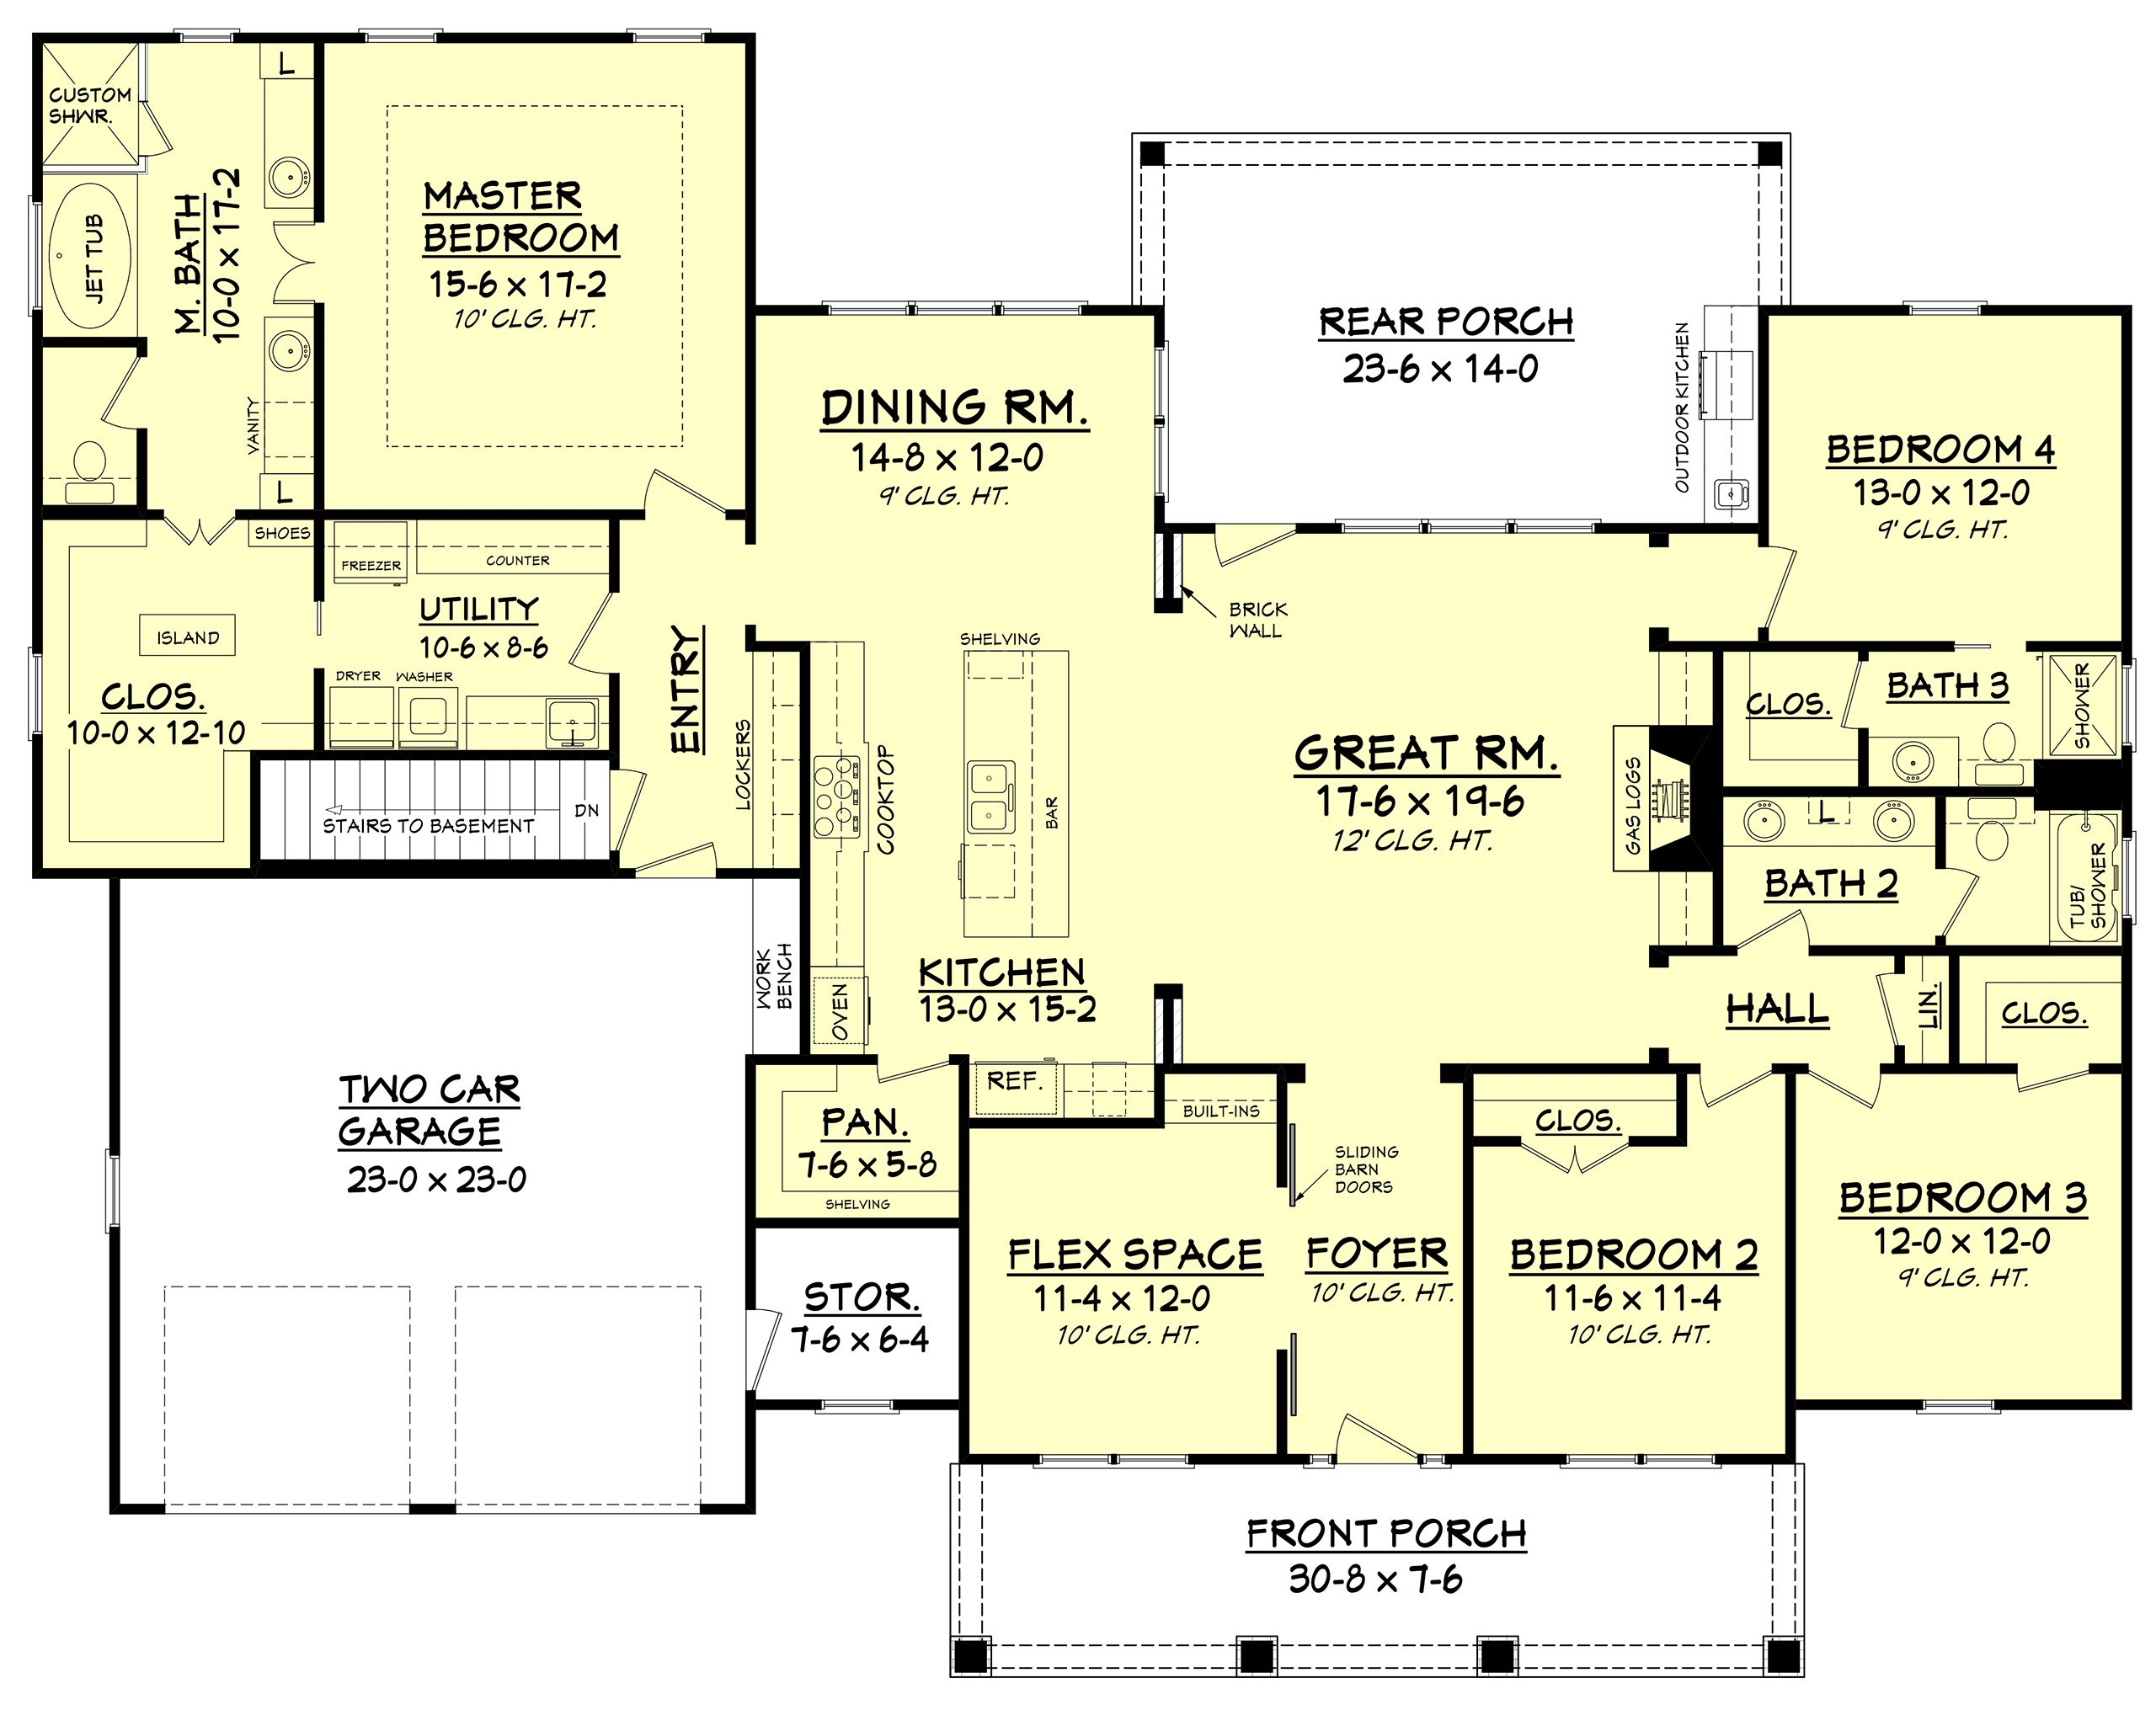 Craftsman Style House Plan 4 Beds Baths 2639 Sq Ft